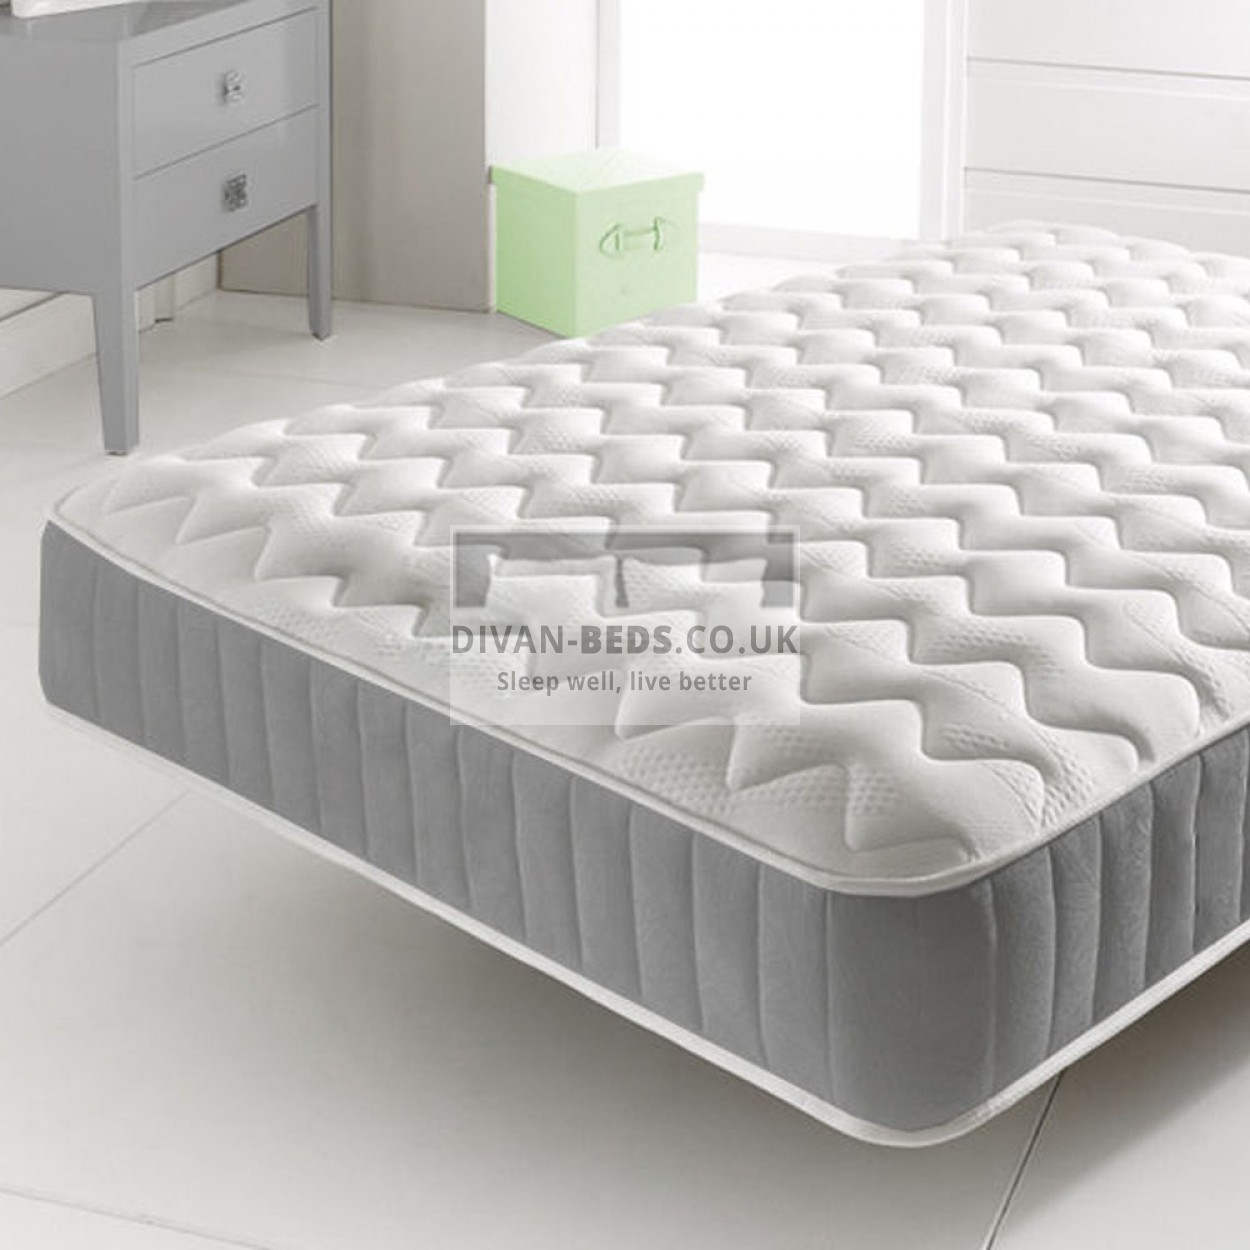 Orthopaedic Quilted Spring Memory Foam Mattress Guaranteed Cheapest Free Amp Fast Delivery